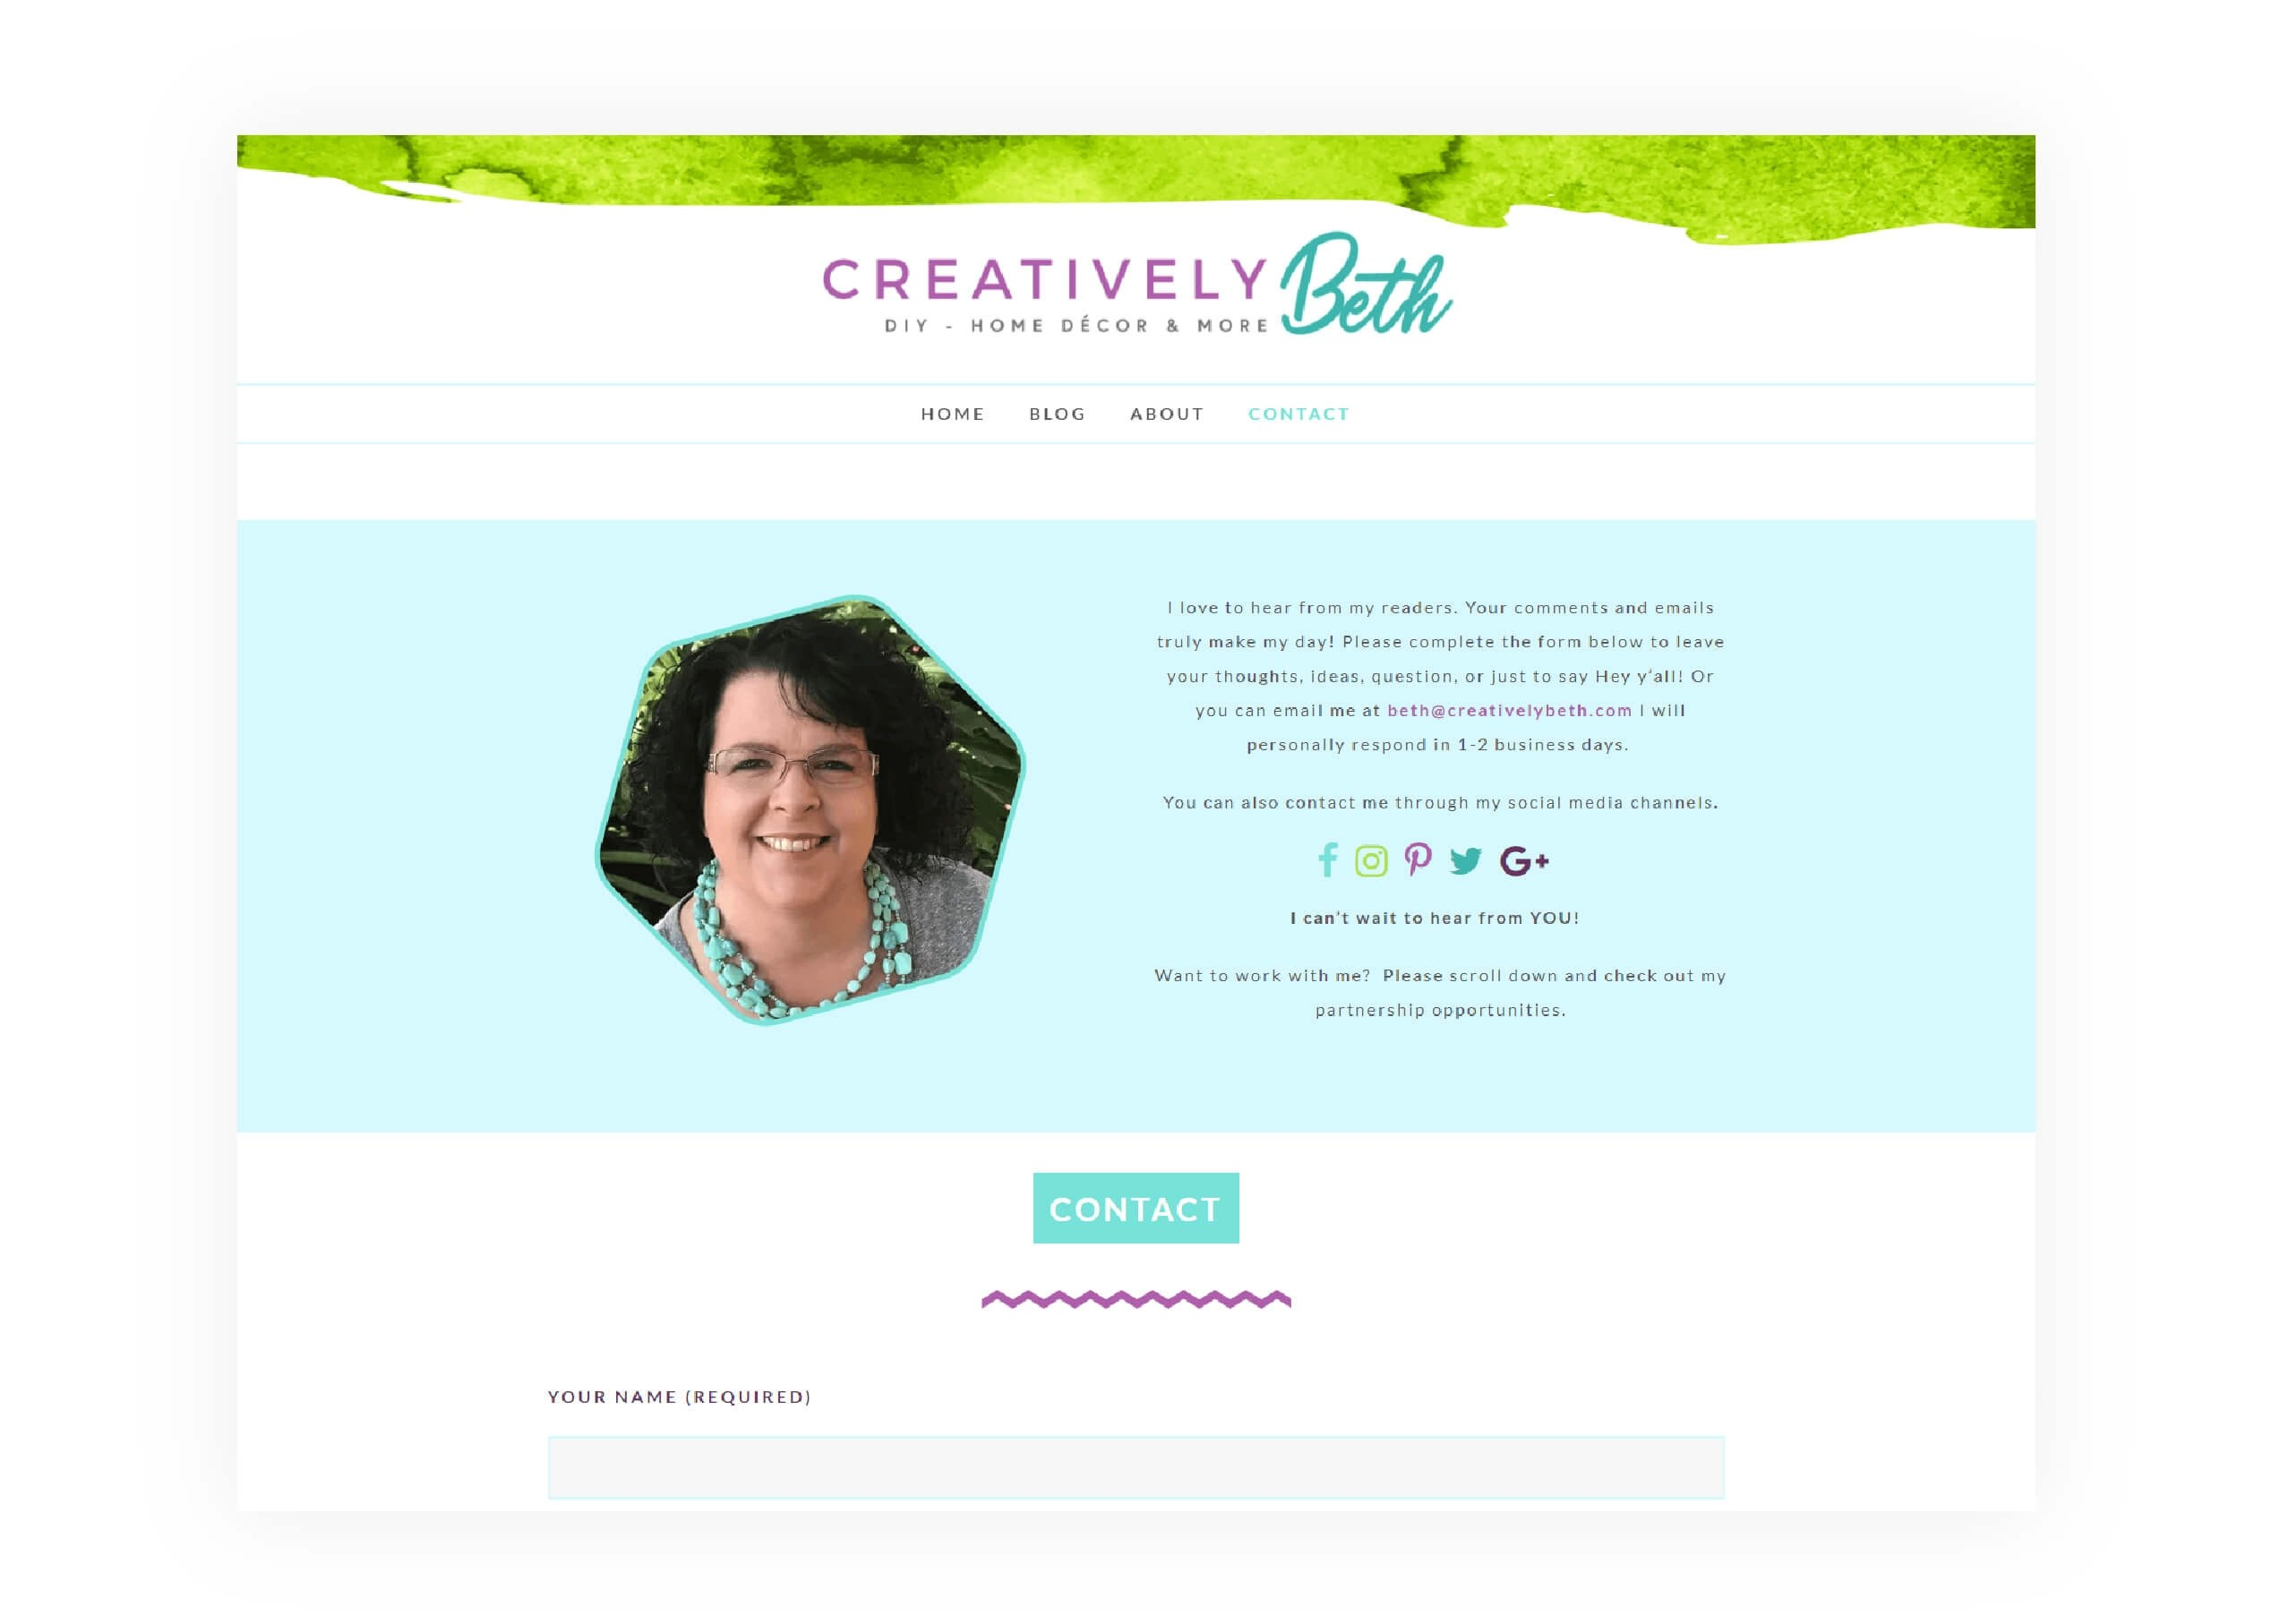 Creatively Beth - Contact Page Design - MintSwift